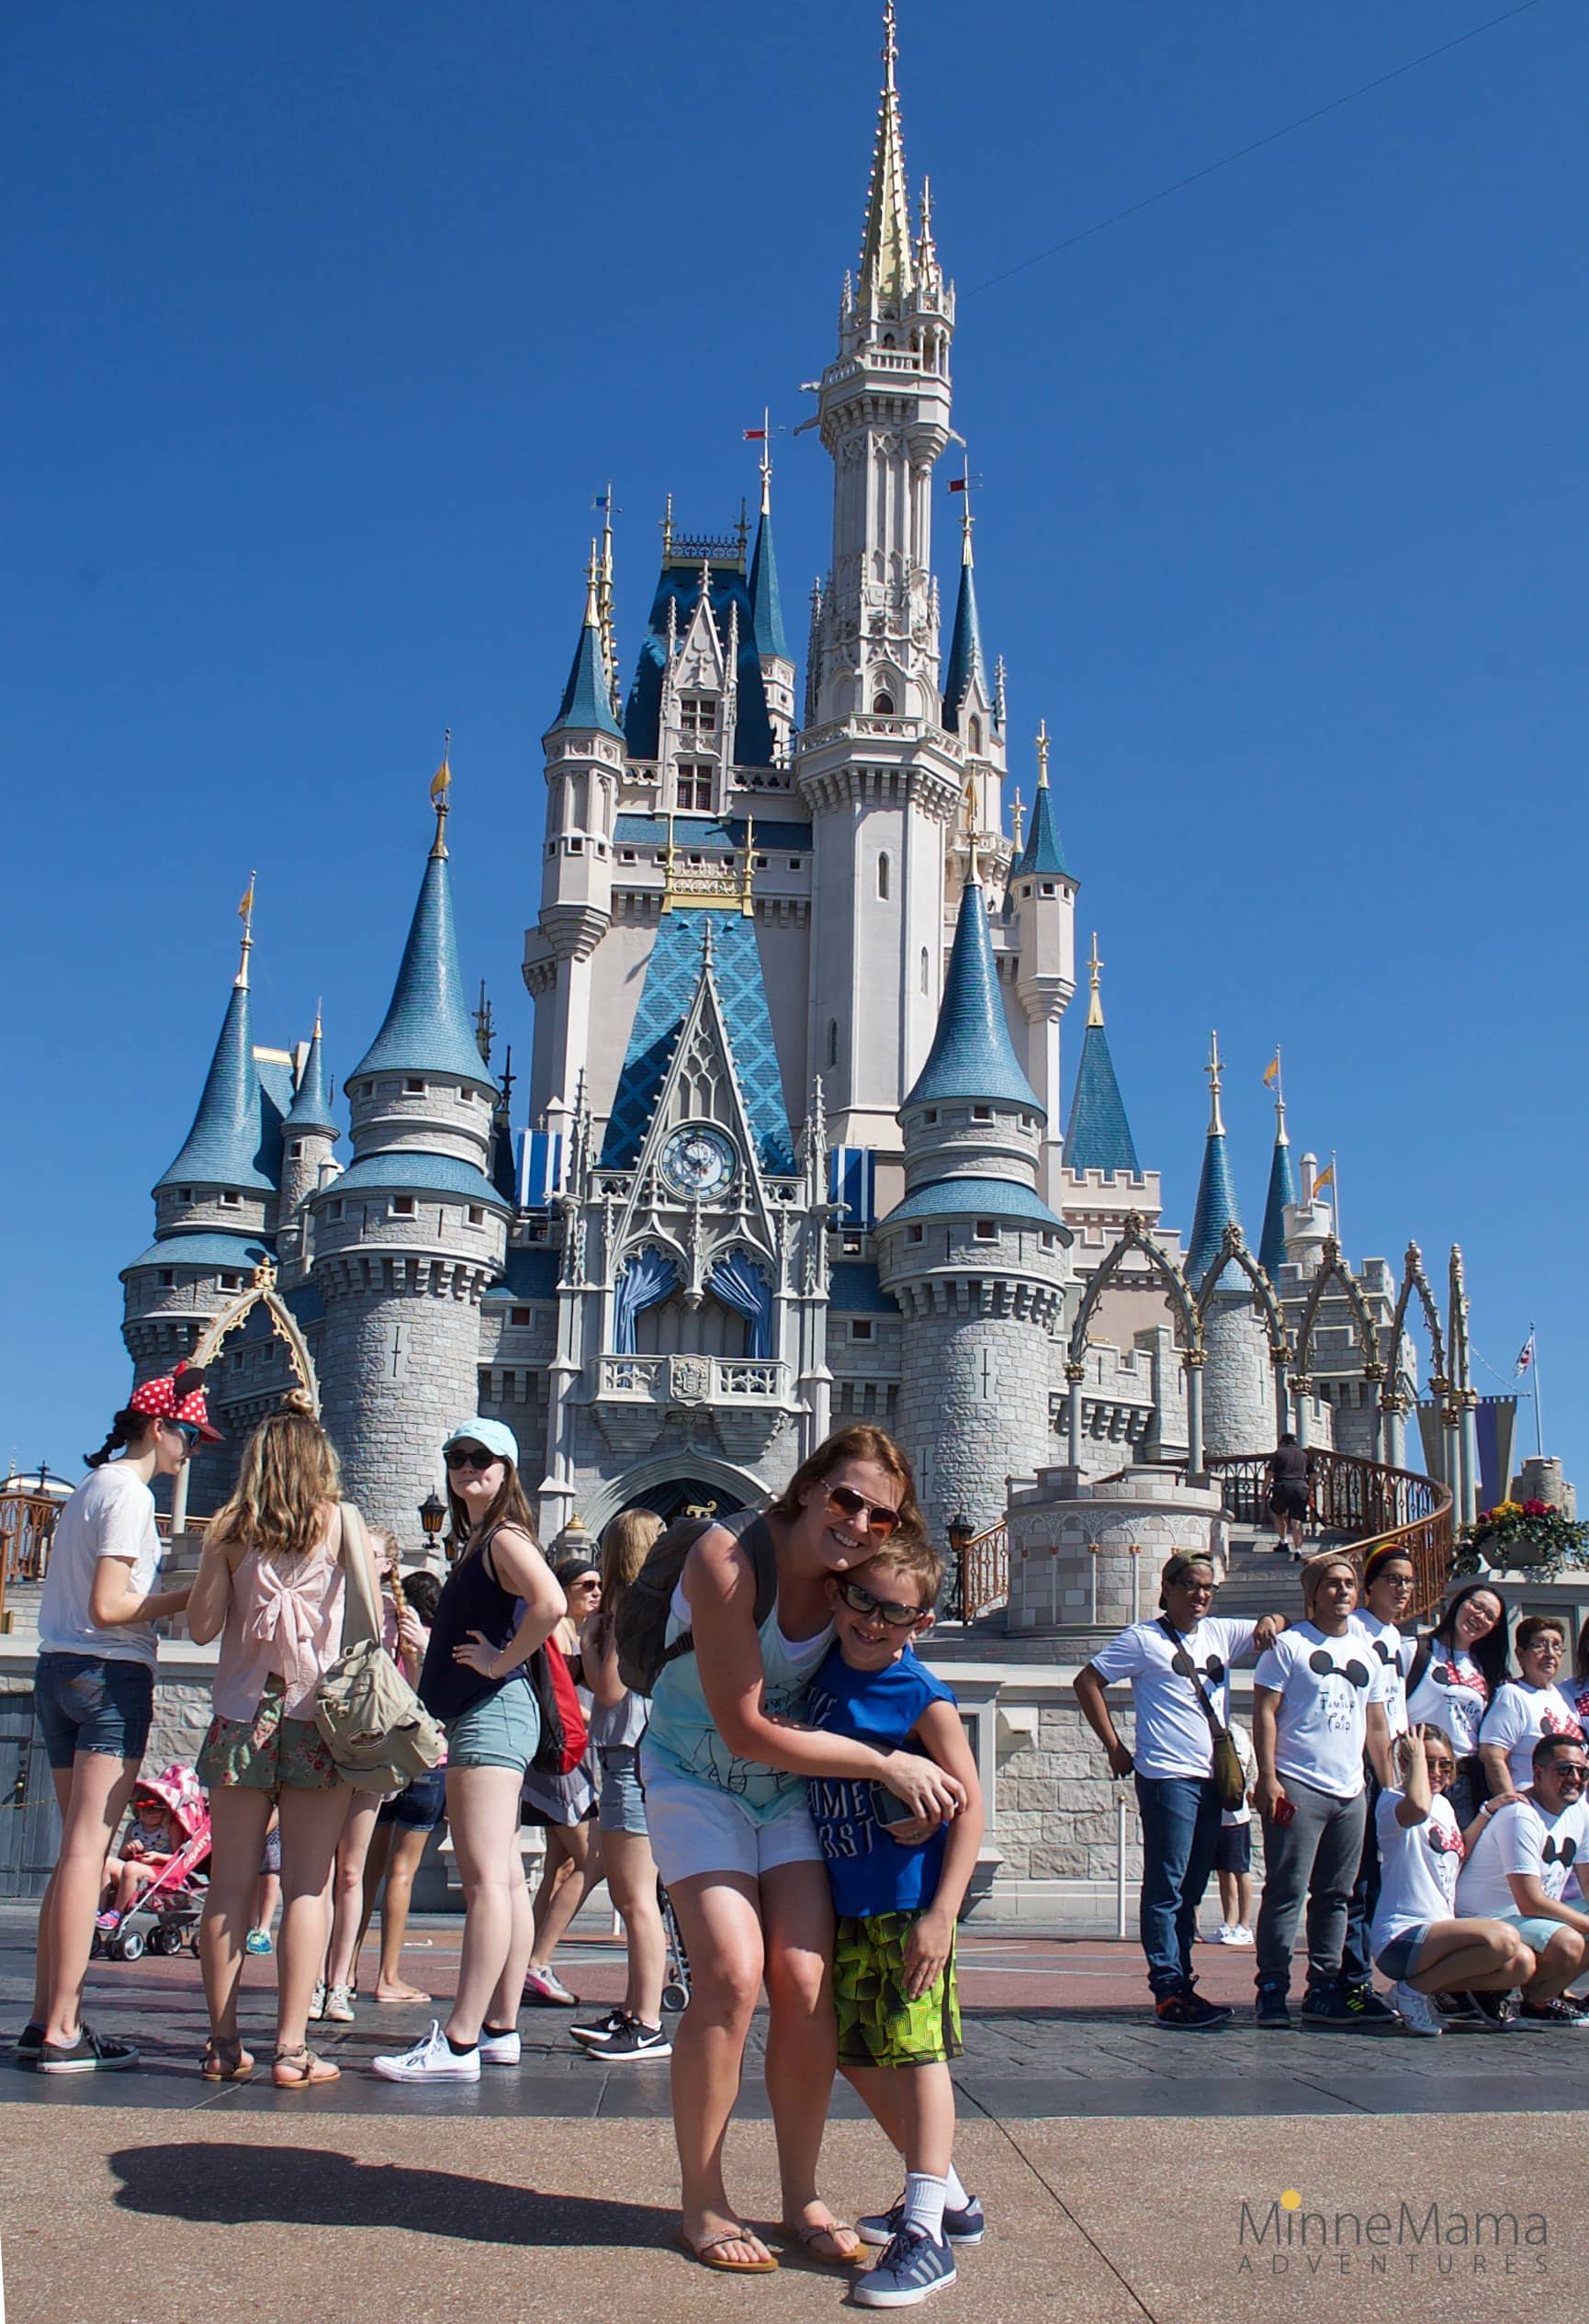 Jul 13,  · At Disney resorts, it's almost impossible not to splurge on a few awesome things you want — and that's fine if it's within your budget. Don't, however, waste your money by paying theme-park prices for things you need and should have brought from home.